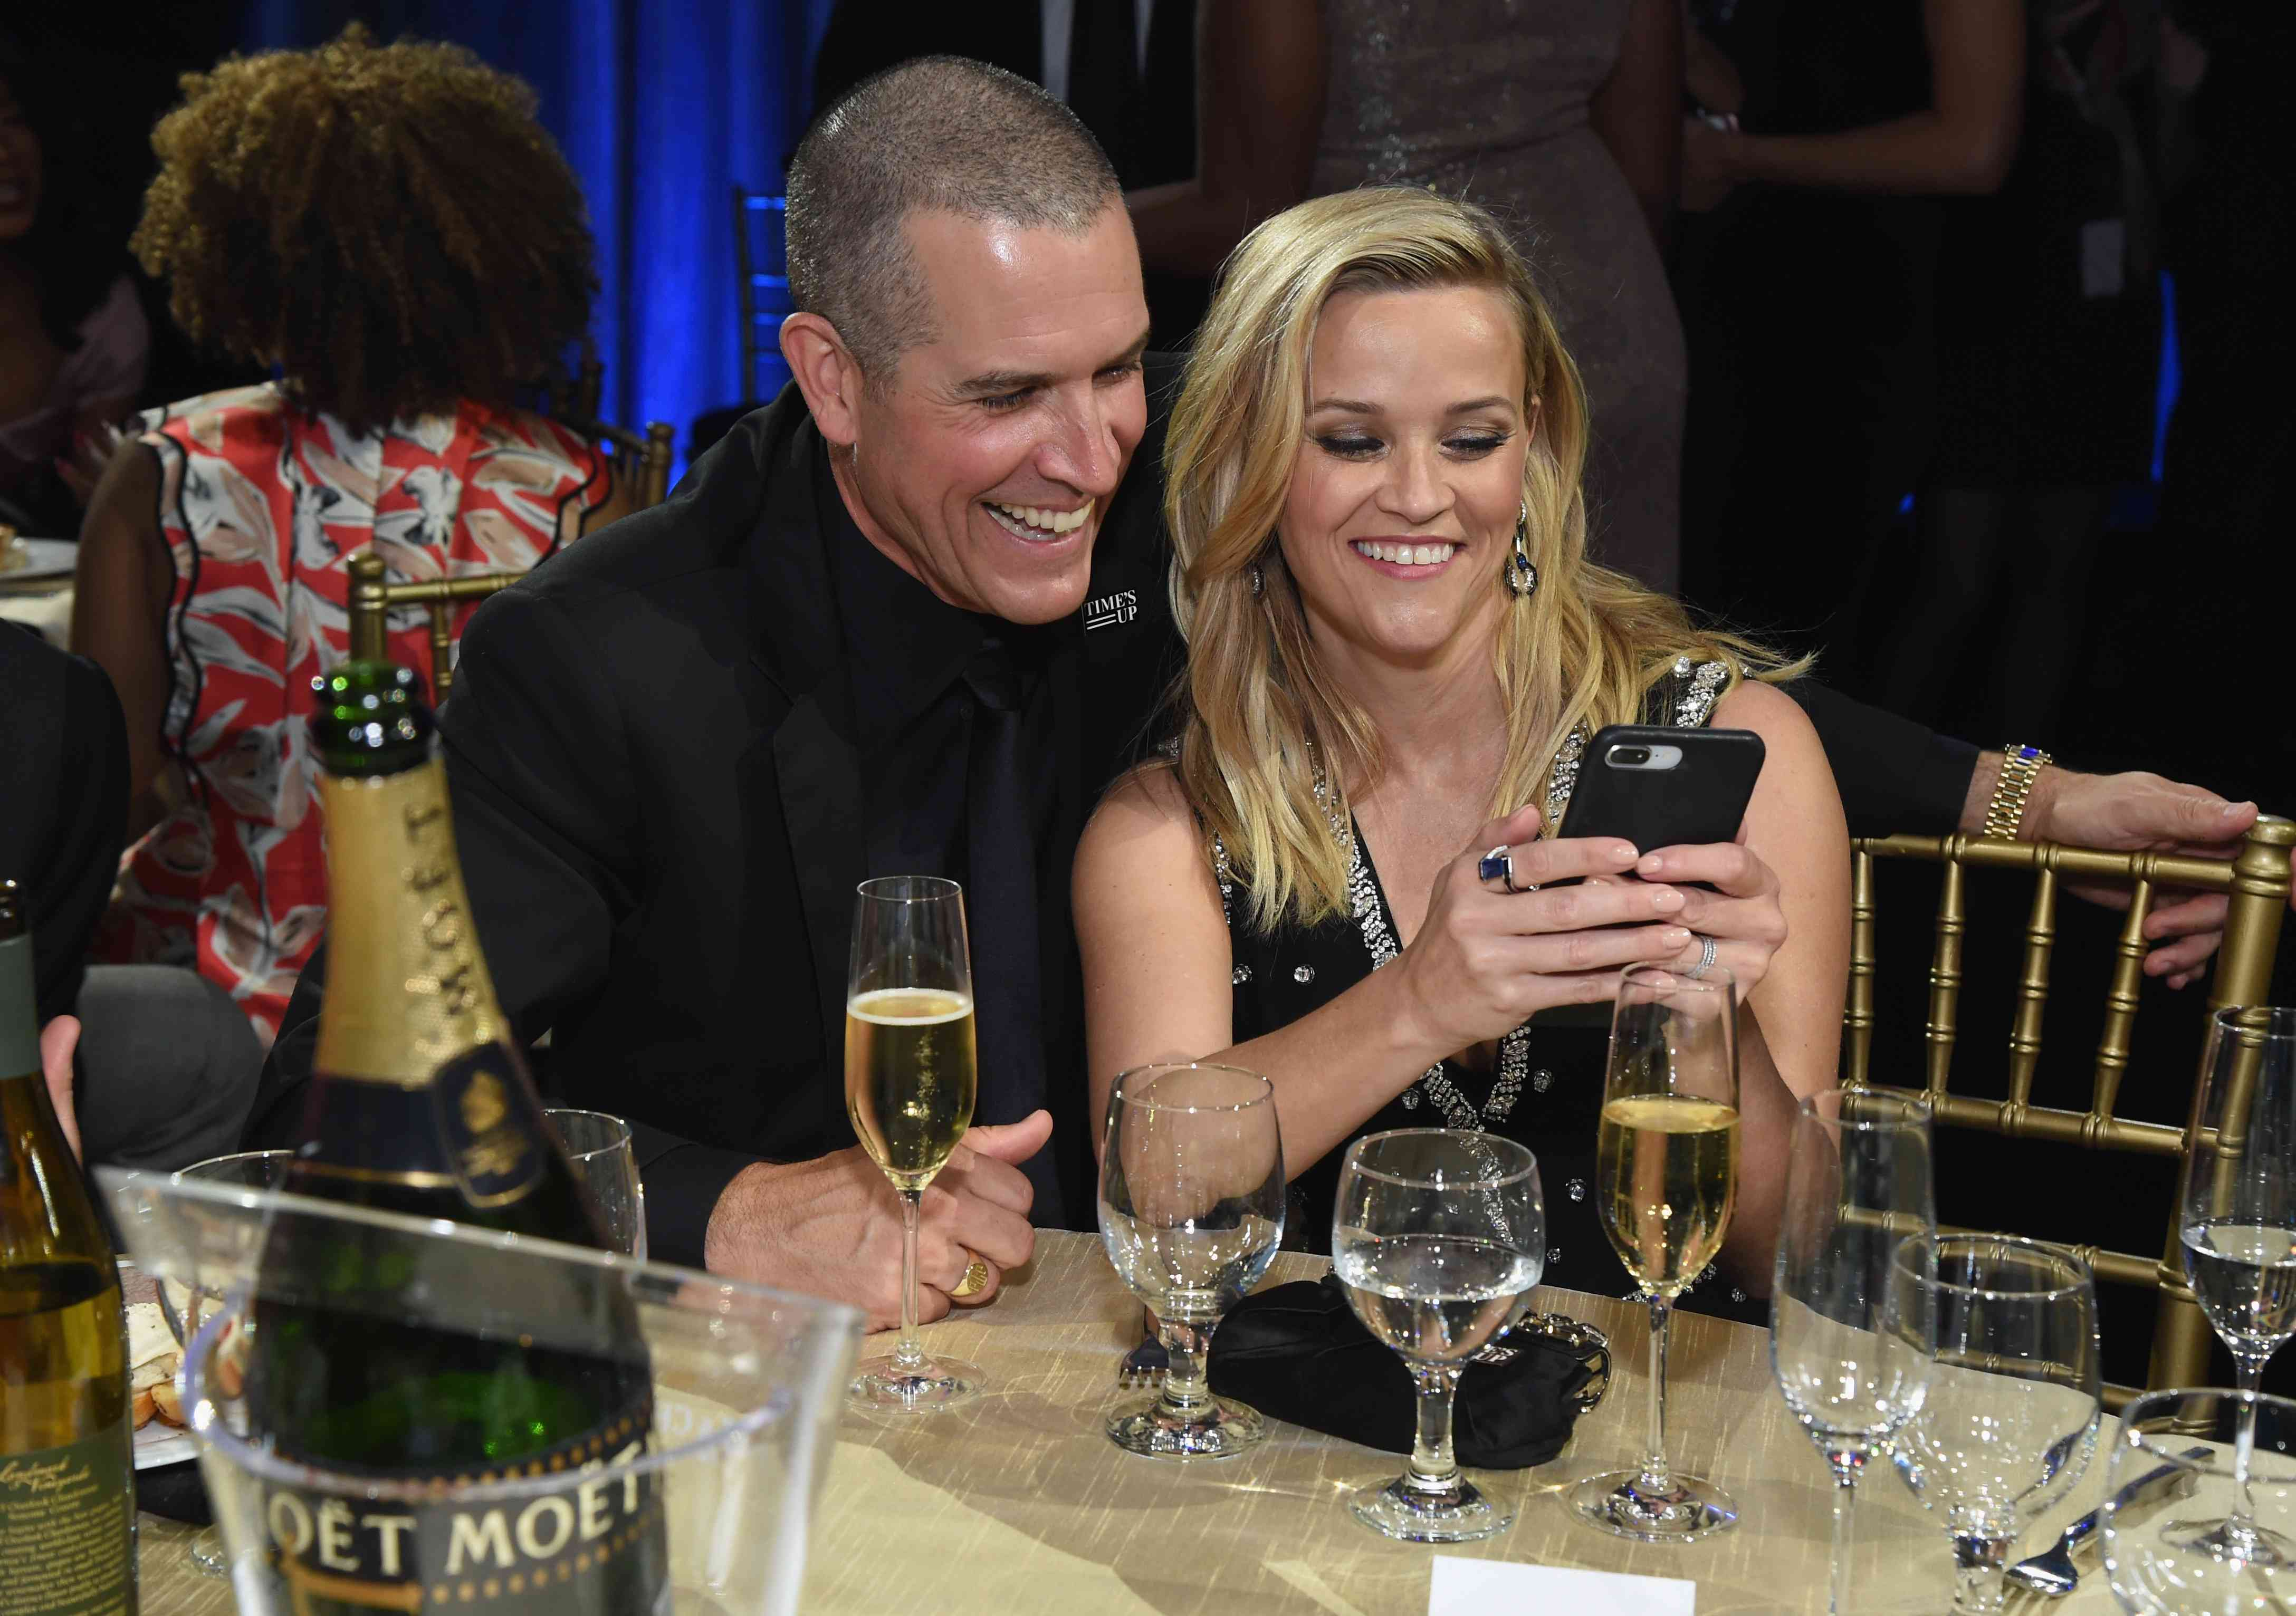 Jim Toth and Reese Witherspoon sitting together